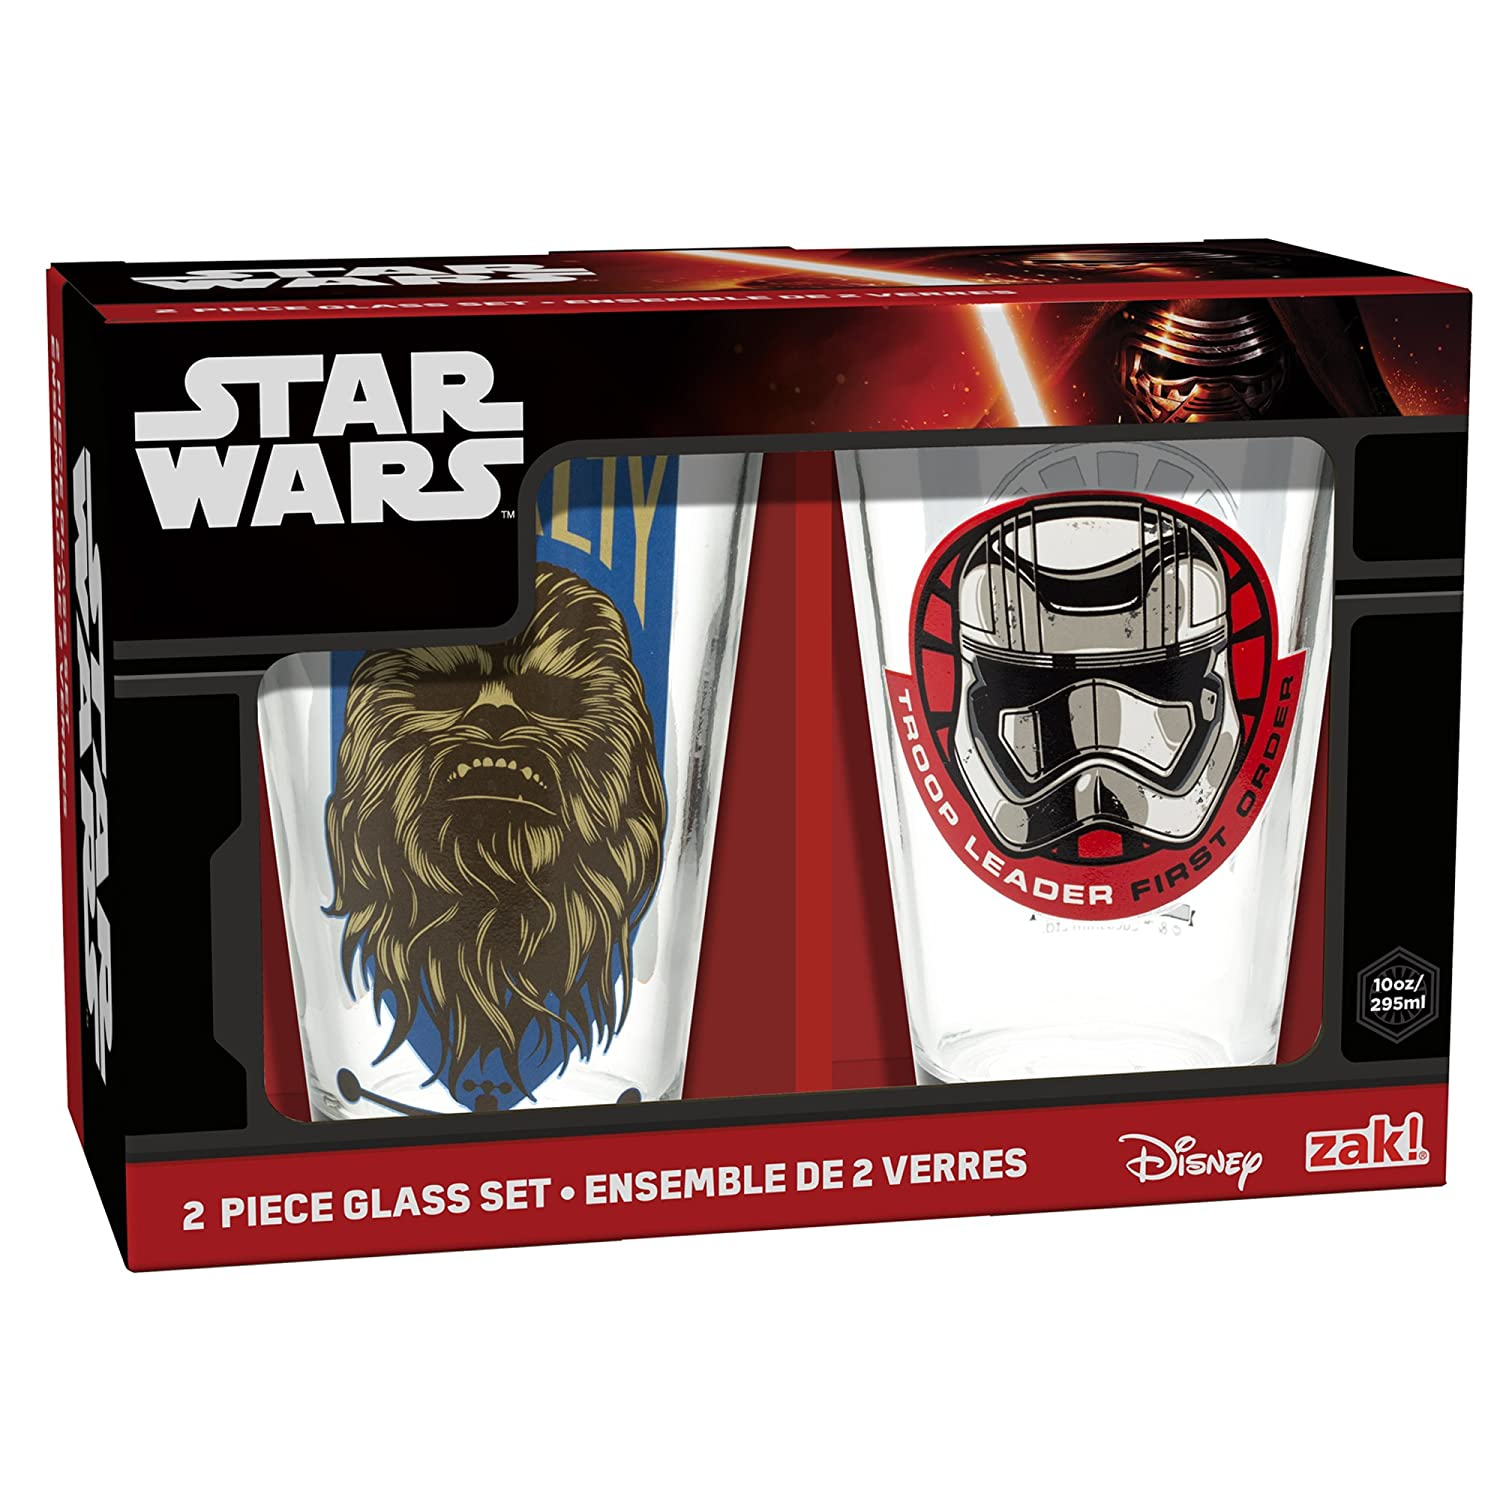 Zak! Designs Juice Glasses Featuring Graphics from Star Wars The Force Awakens, 10 oz, Set of 2 Zak Designs SWRH-R190